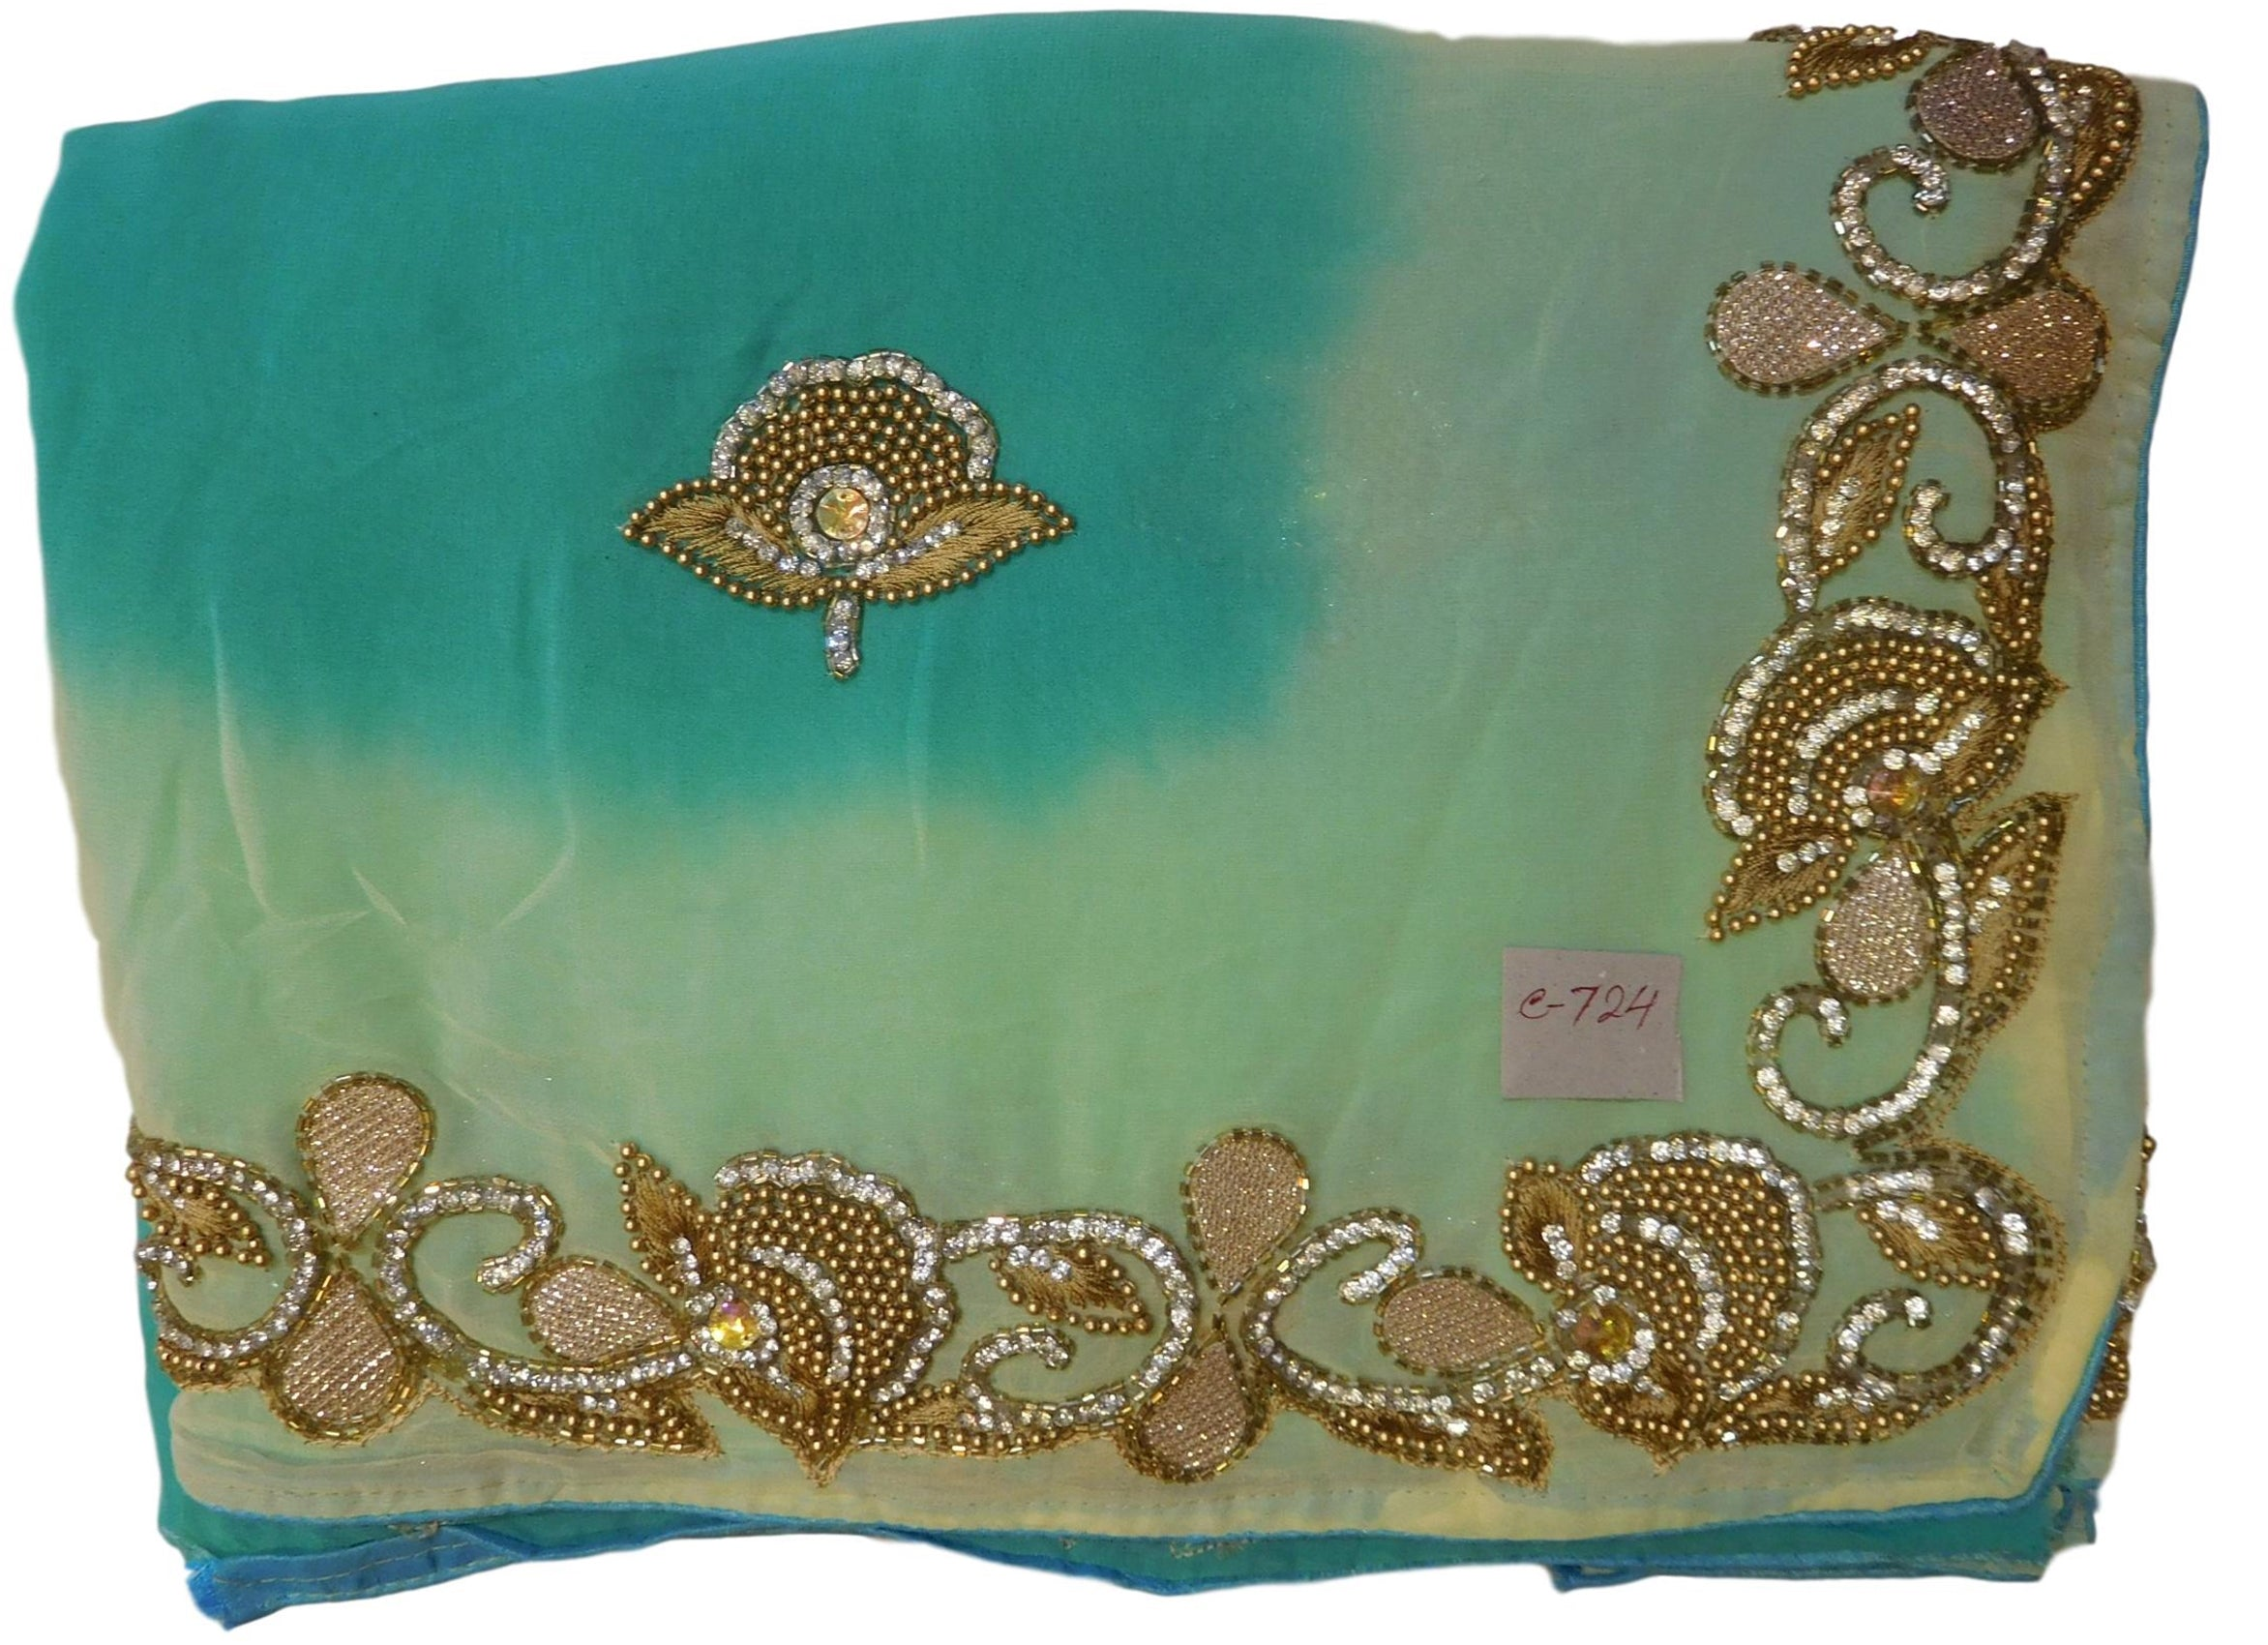 Turquoise & Cream Designer Georgette (Viscos) Hand Embroidery Beads Cutdana Thread Stone Work Saree Sari